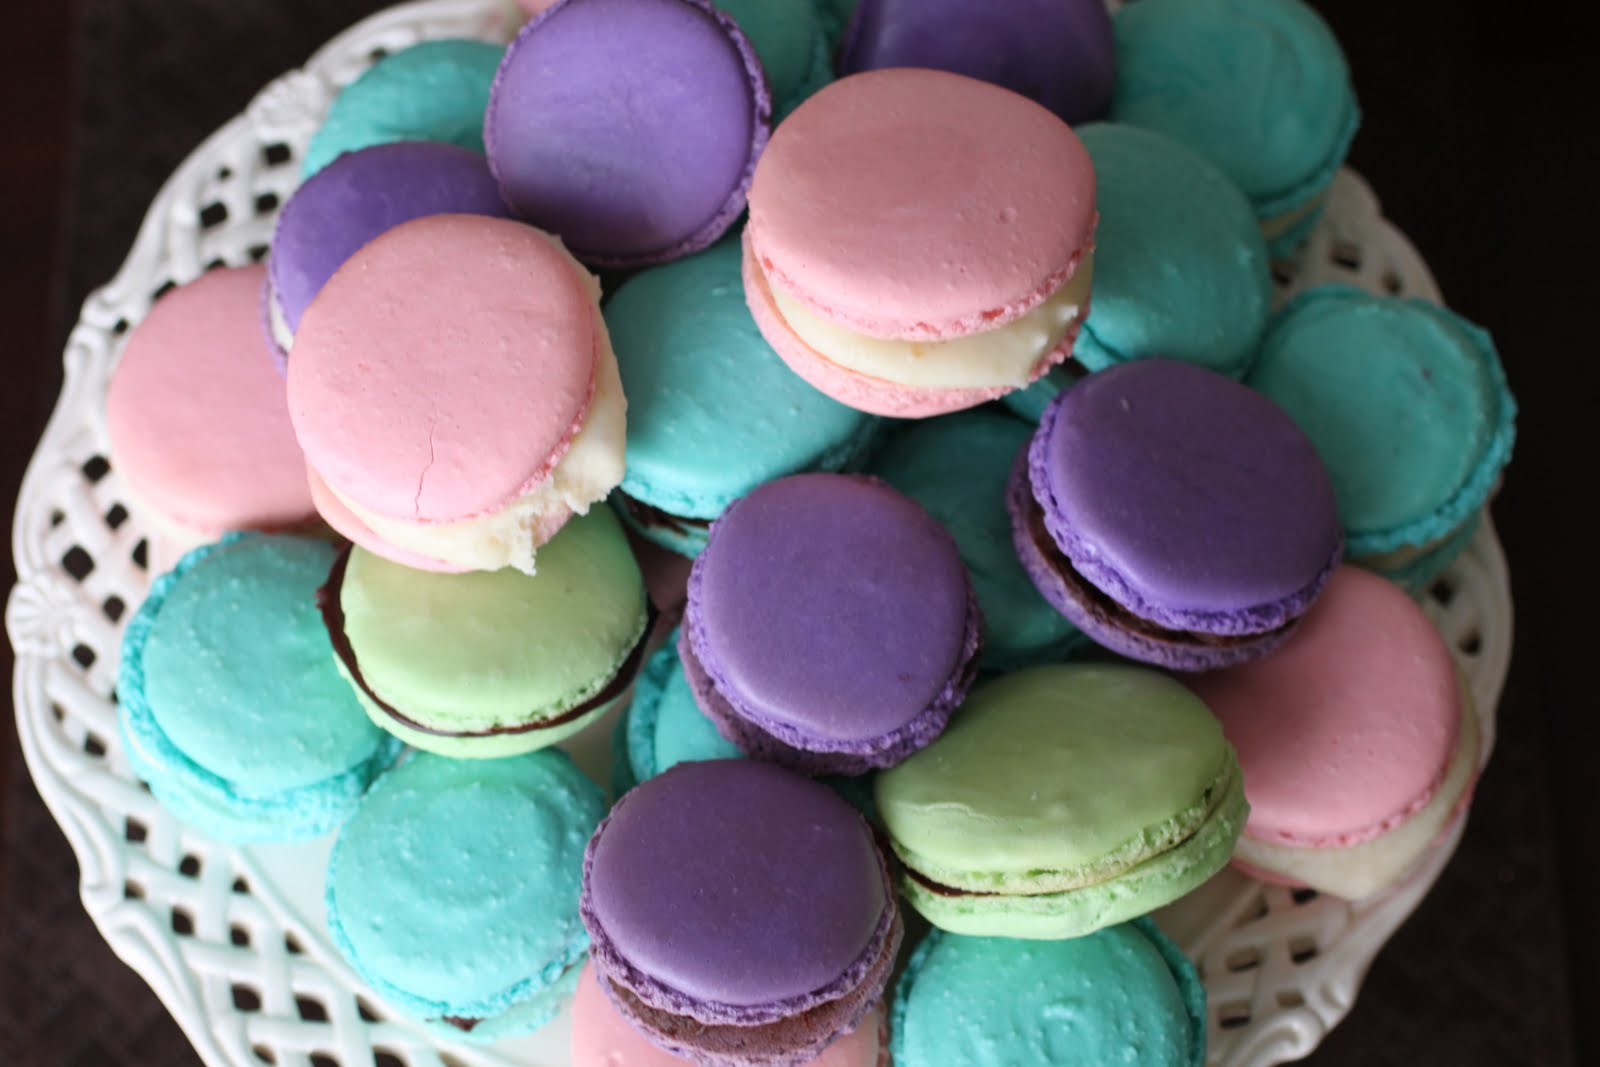 ... and blog about french macarons for quite a while now but as with most